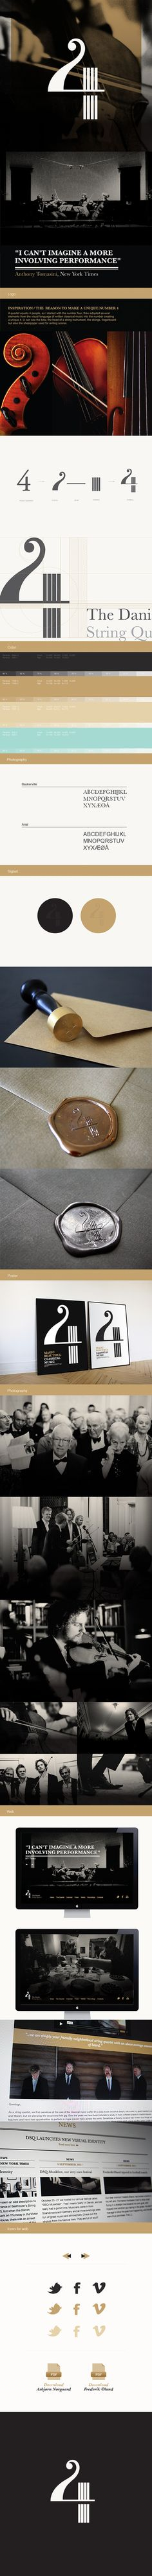 The Danish String Quartet / Corporate identity by Maibritt Lind Hansen